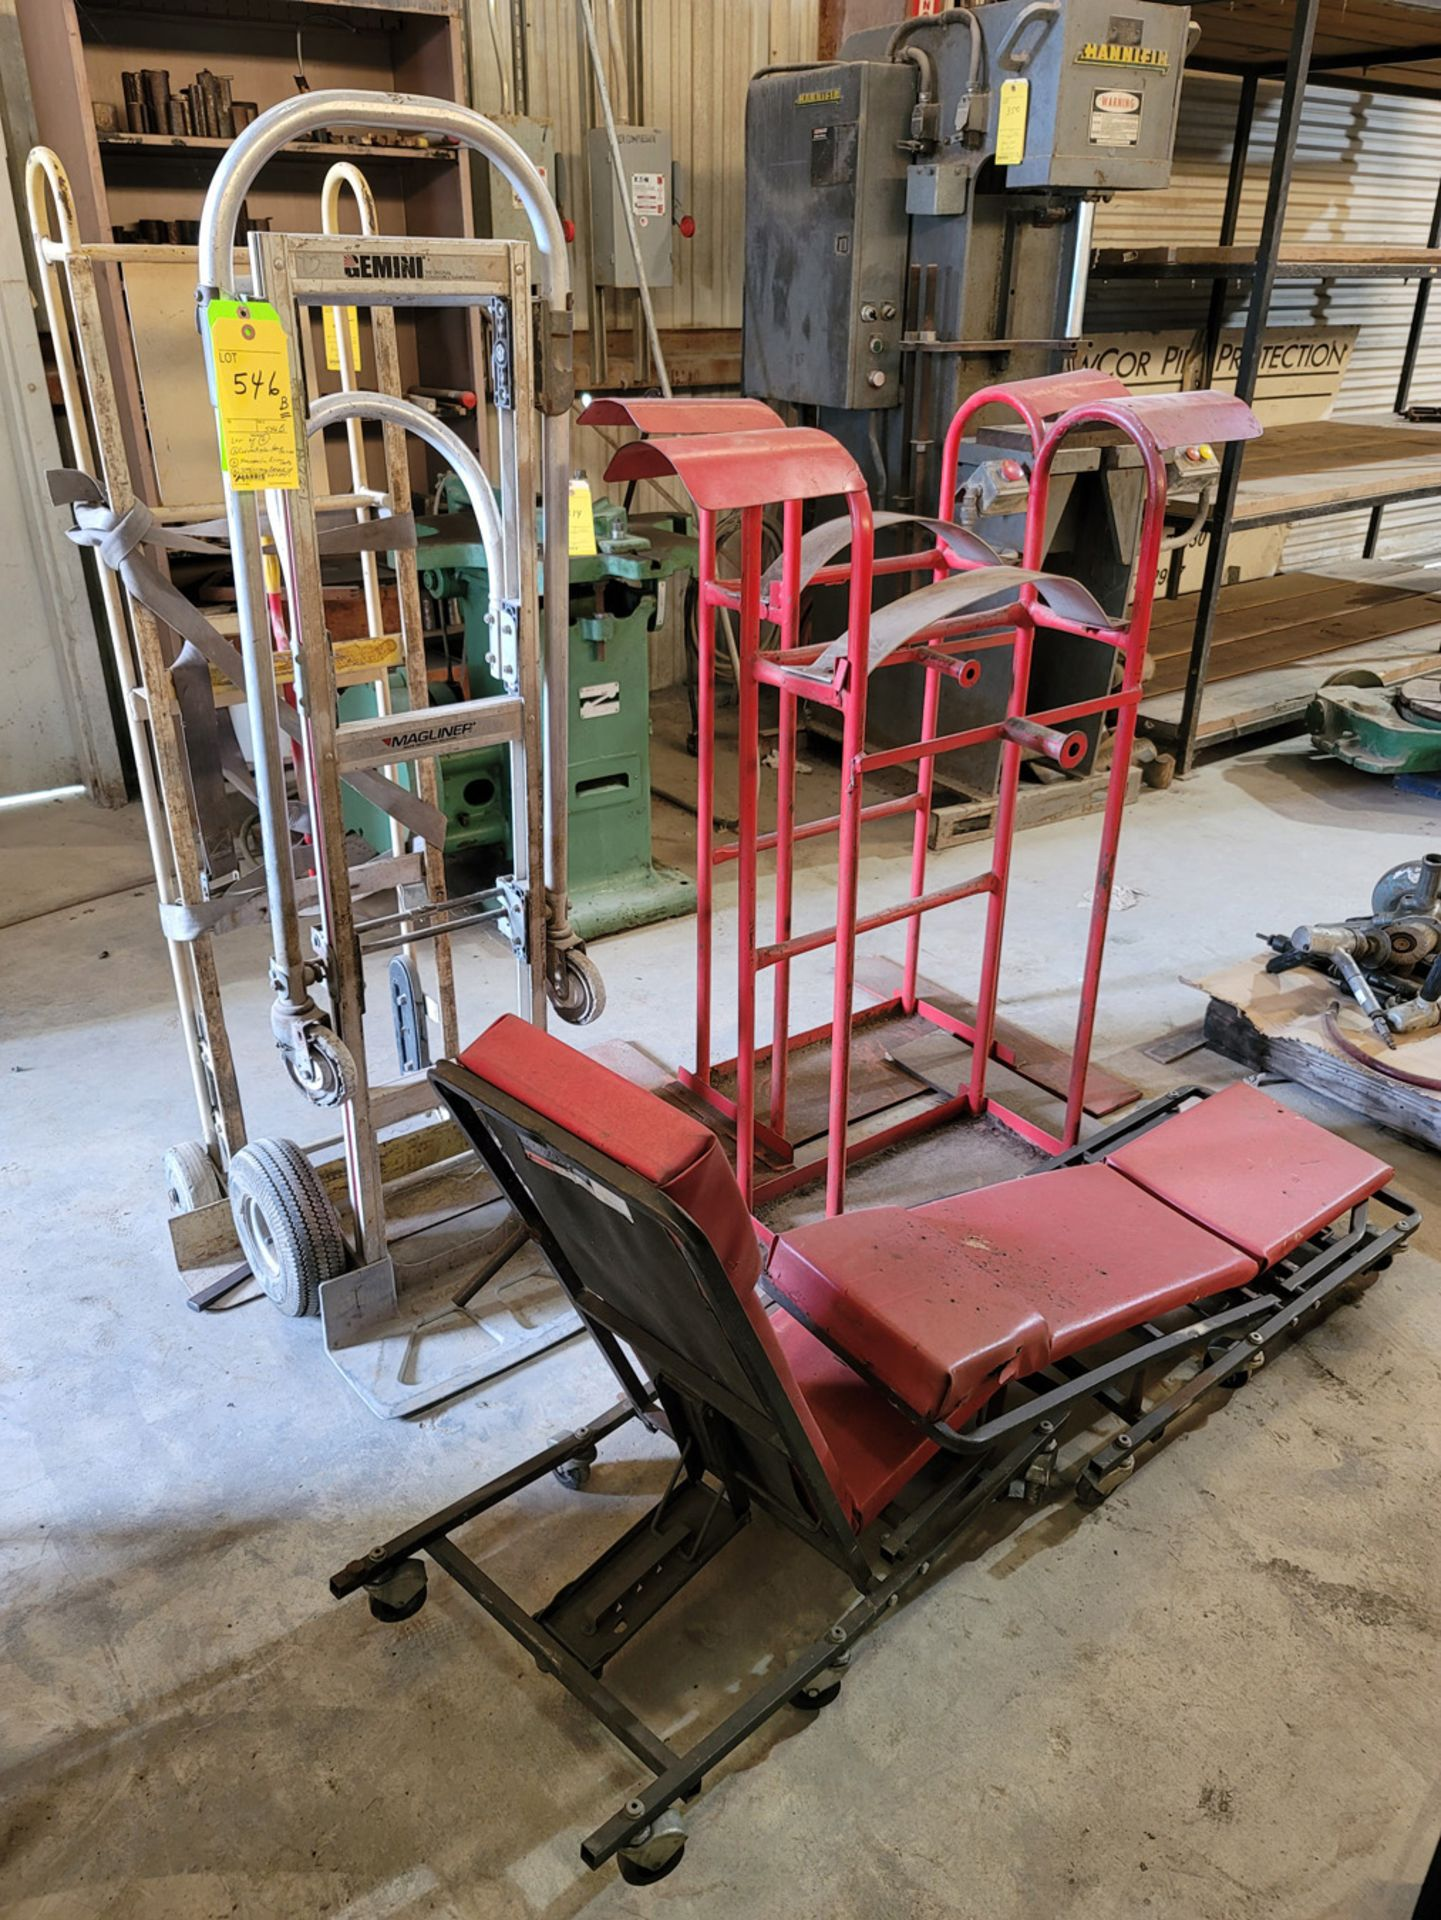 Lot of 6: (2) Convertible Hand Trucks, (2) Mechanic Roll Carts, (2) Stationary Carts with side exten - Image 2 of 3